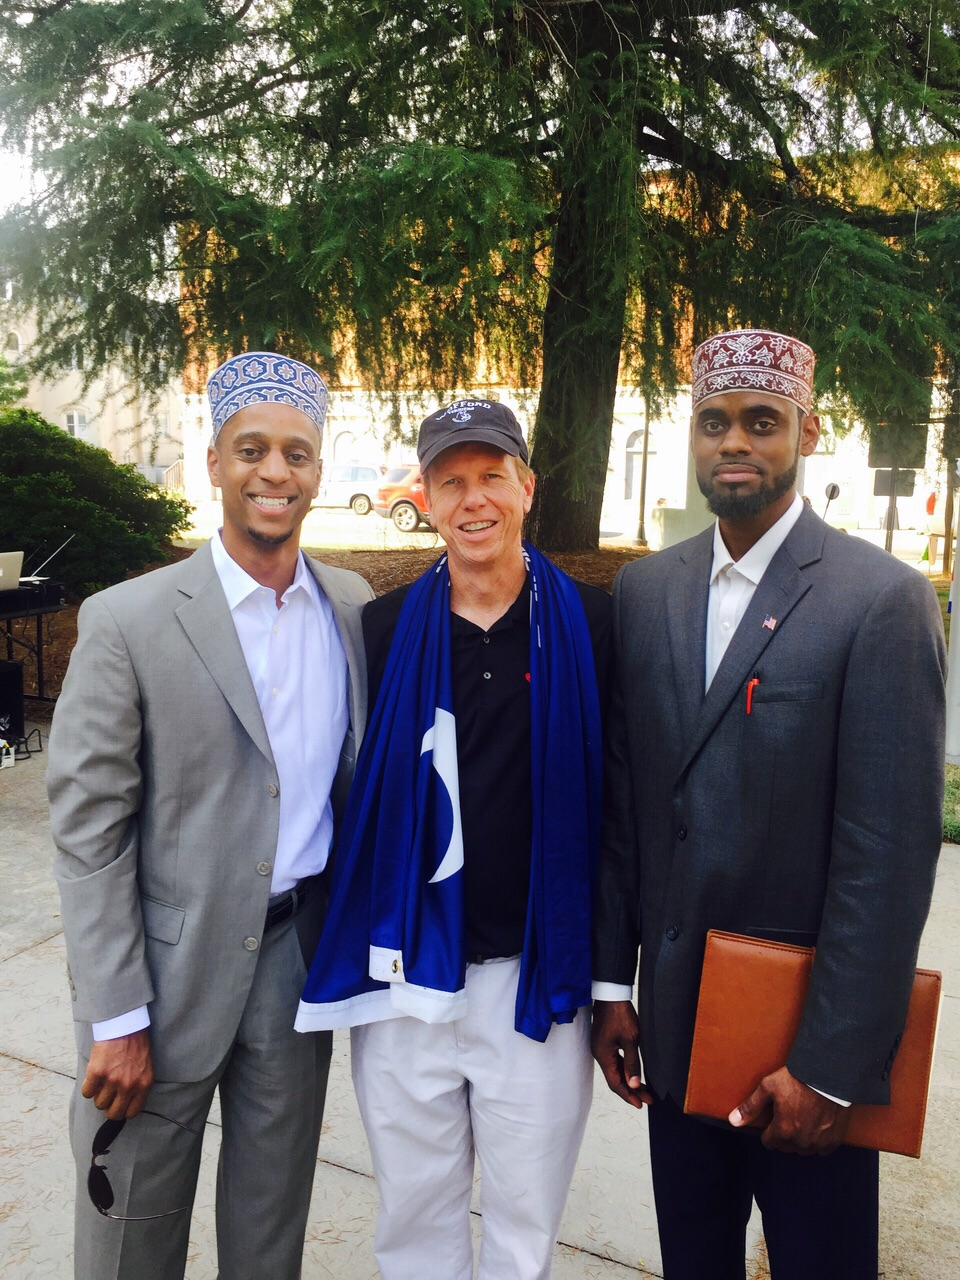 TMOA peace rally in SC with Muslims and Christians united